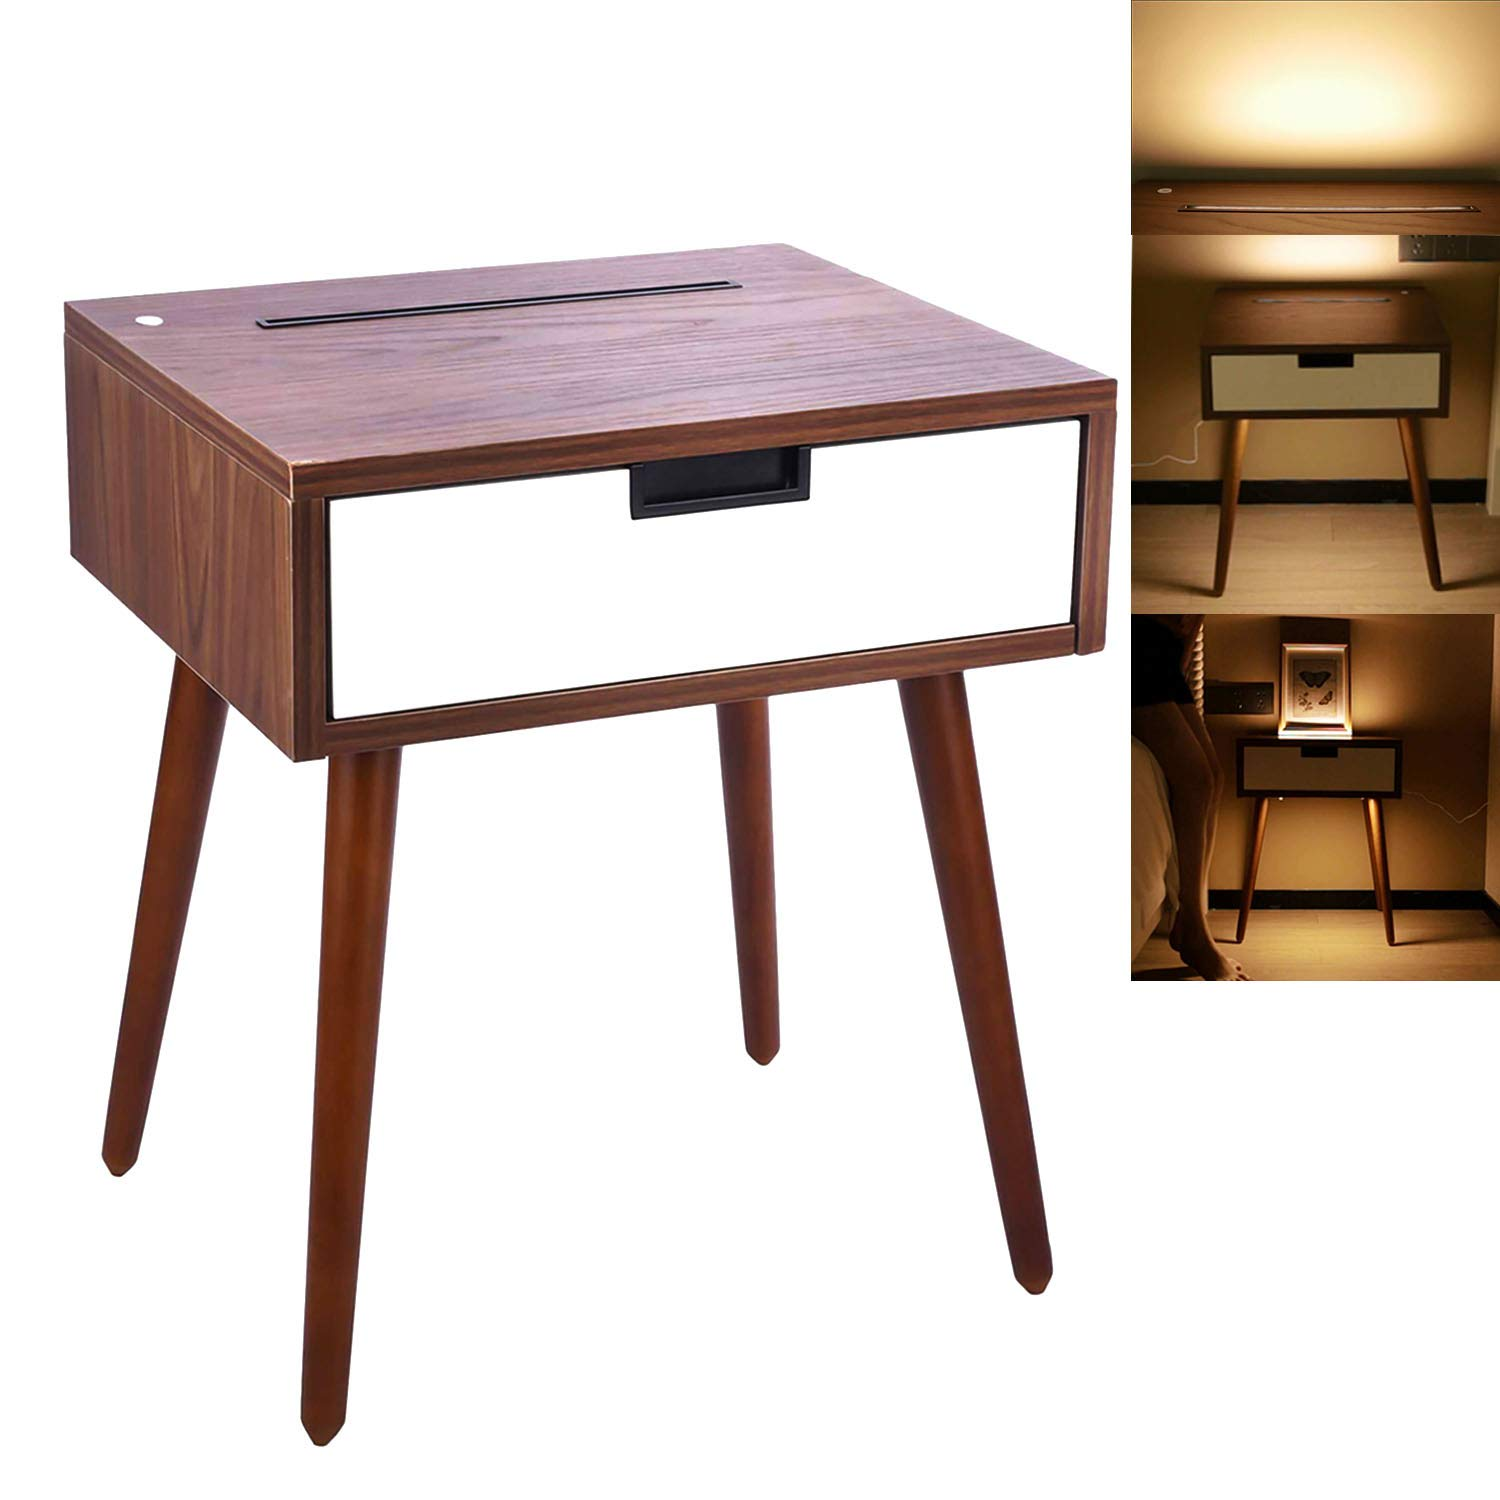 Frylr Nightstand End Table with Drawer